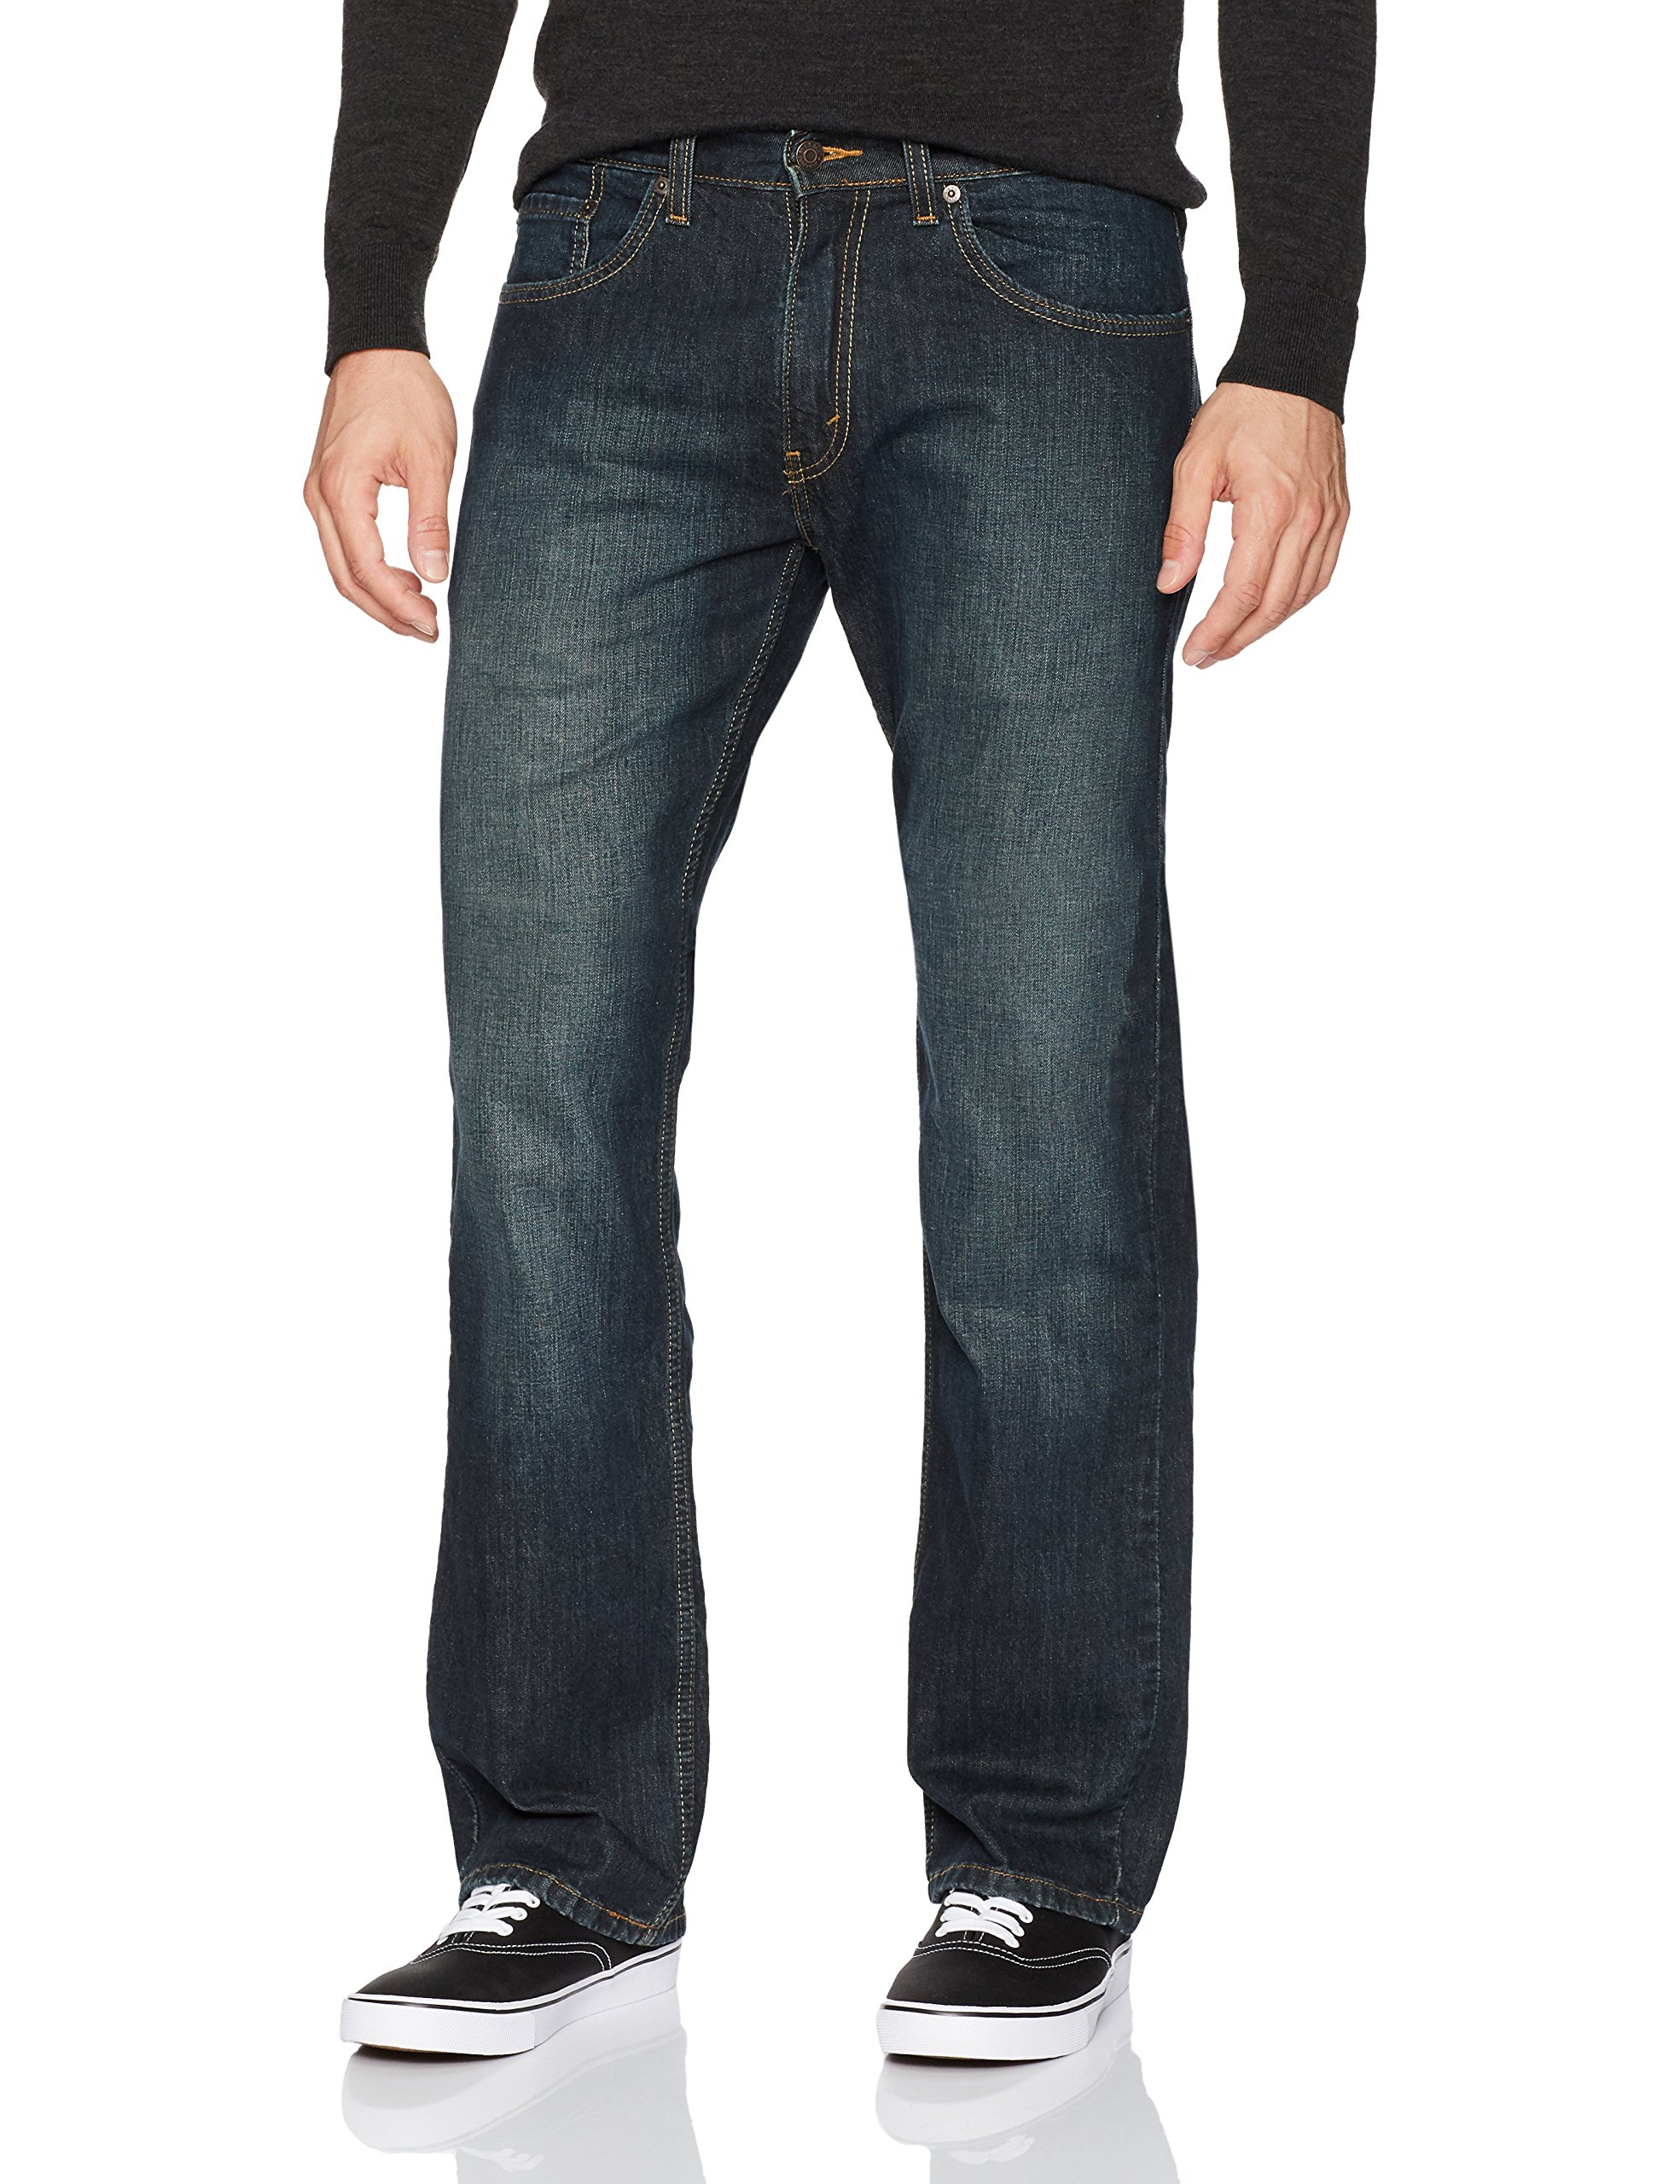 Best Buy Signature by Levi Strauss & Co. Gold Label Men's Relaxed Fit Jeans Reviews